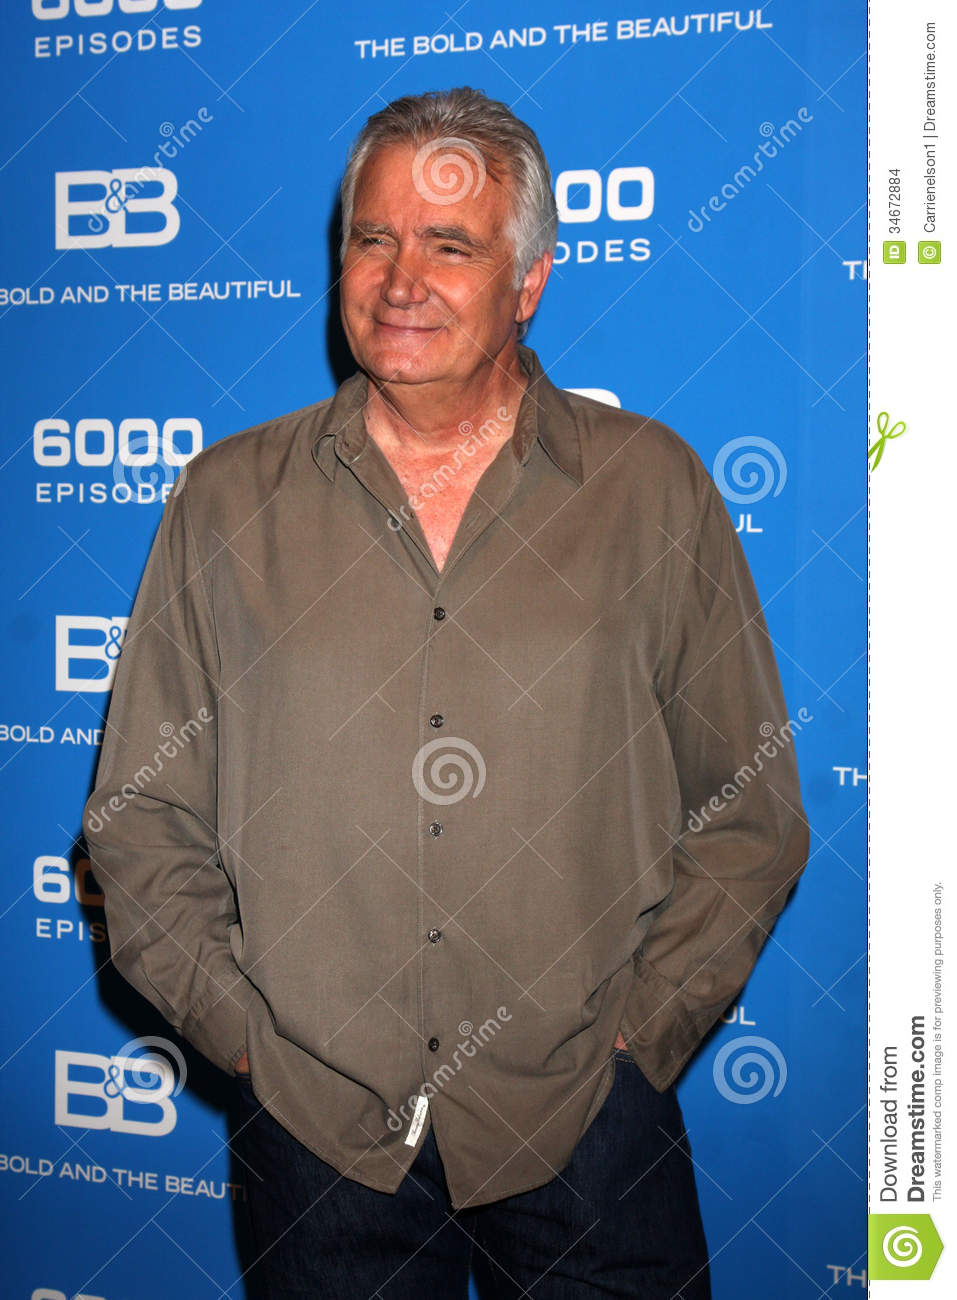 john mccook instagramjohn mccook net worth, john mccook wife, john mccook age, john mccook bio, john mccook young, john mccook memorial, john mccook twitter, john mccook on young and the restless, john mccook instagram, john mccook family, john mccook imdb, john mccook and juliet prowse, john mccook health, john mccook height, john mccook pictures, john mccook images, john mccook y&r, john mccook birthday, john mccook death, john mccook as lance prentiss